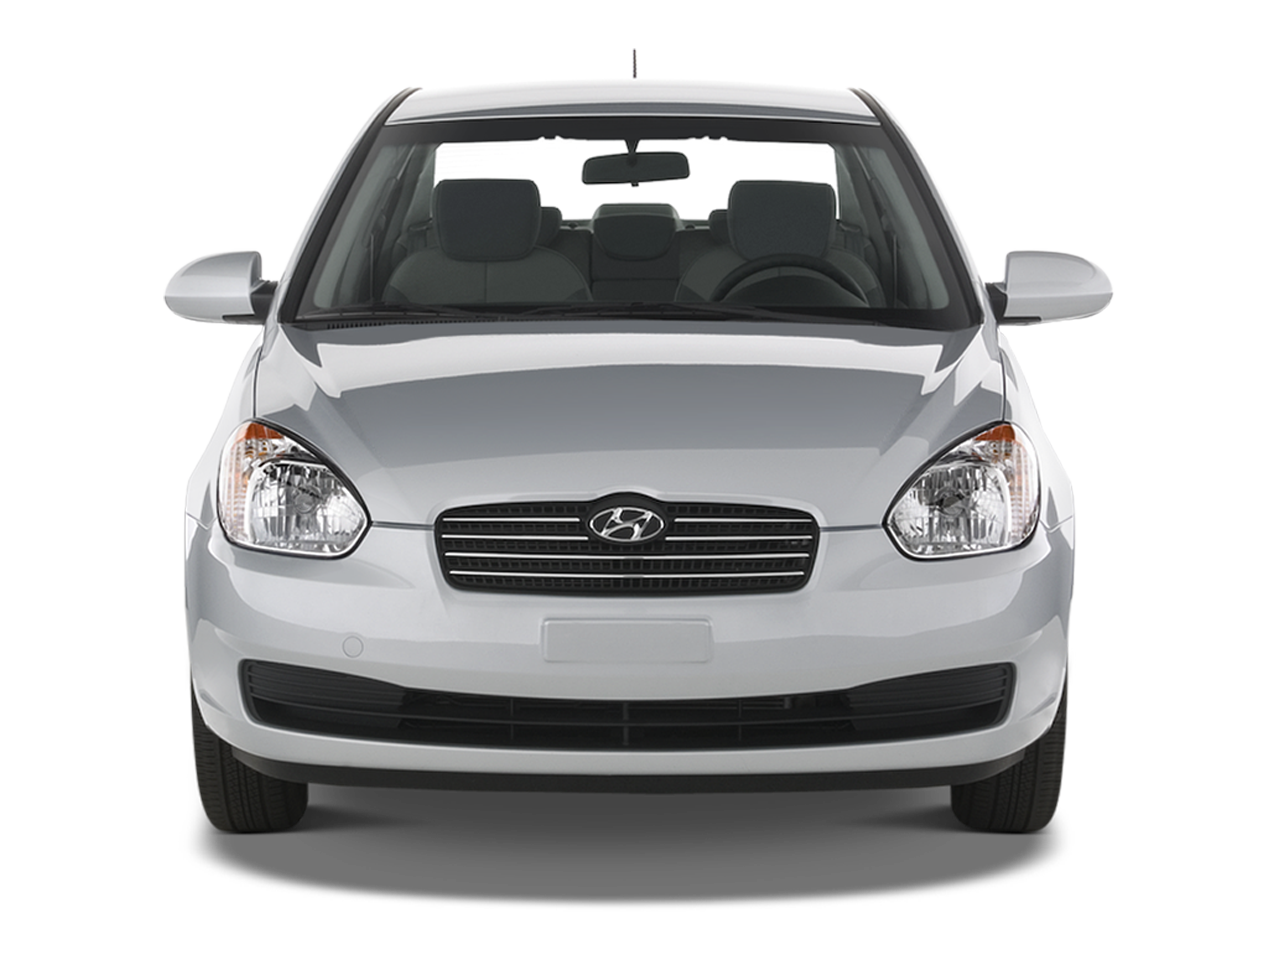 hyundai 39 s accent subcompact receives surprise reveal at. Black Bedroom Furniture Sets. Home Design Ideas